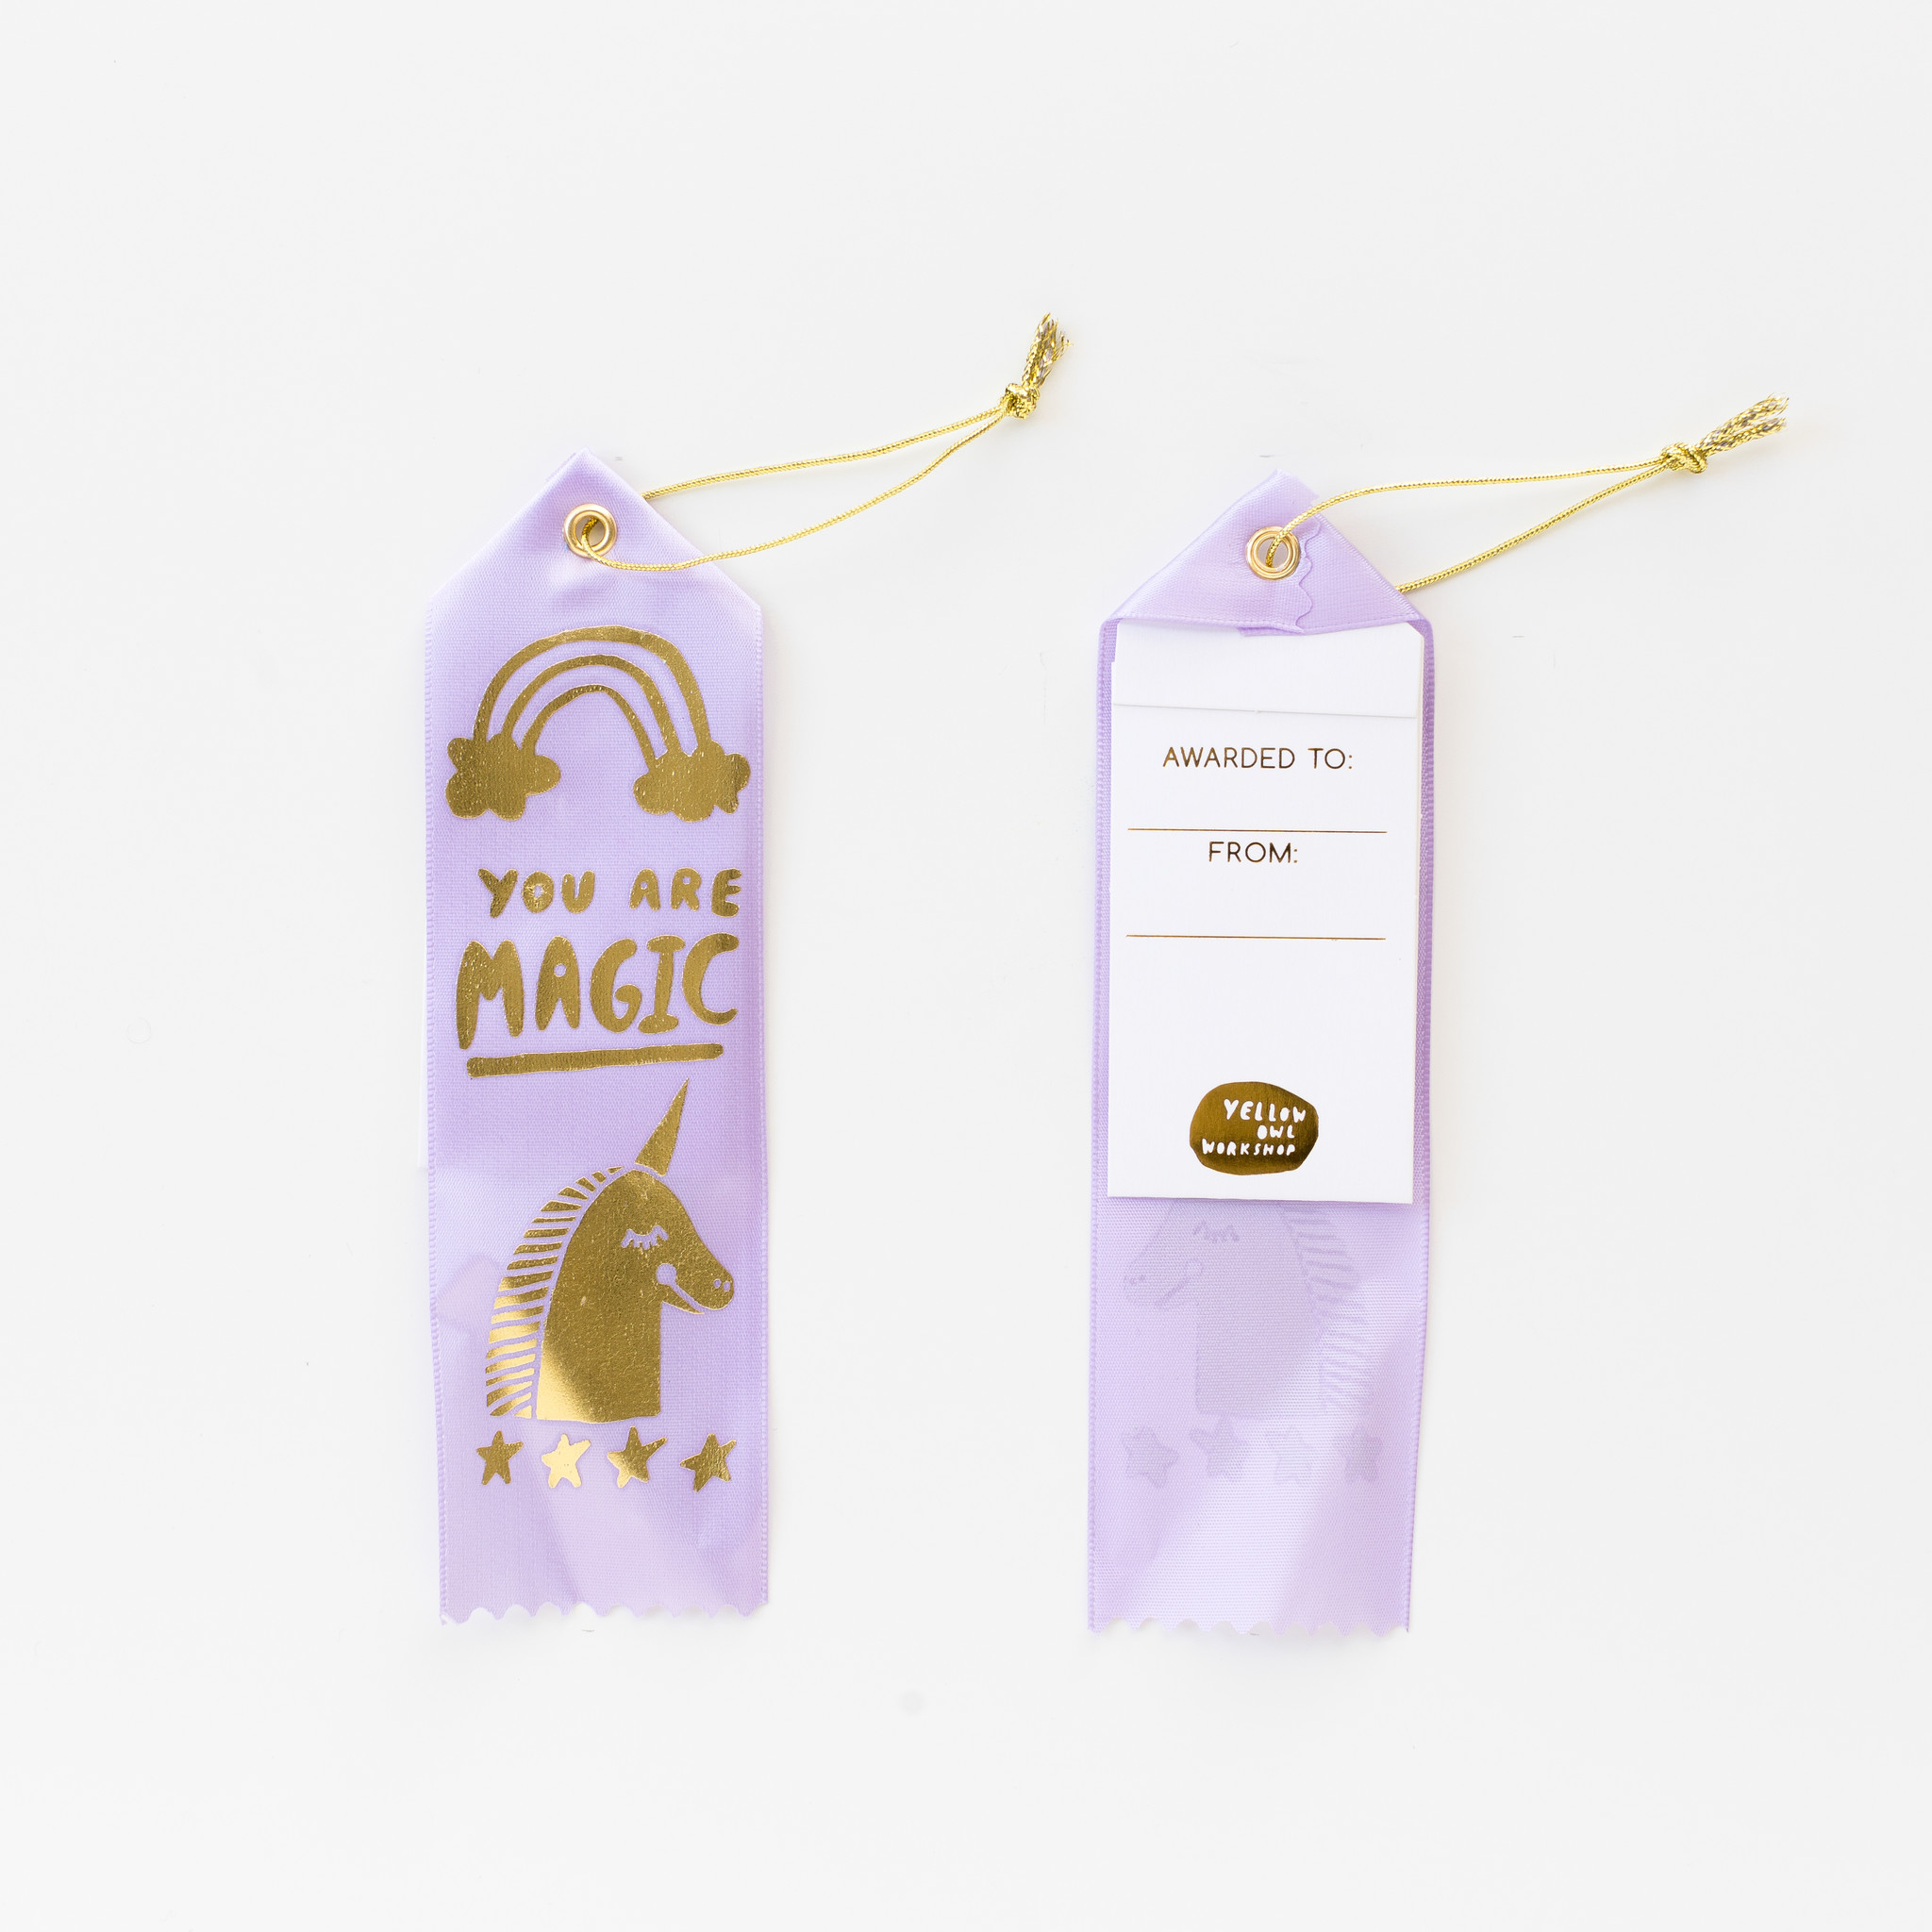 Yellow Owl Workshop : Award Ribbon Note : You Are Magic